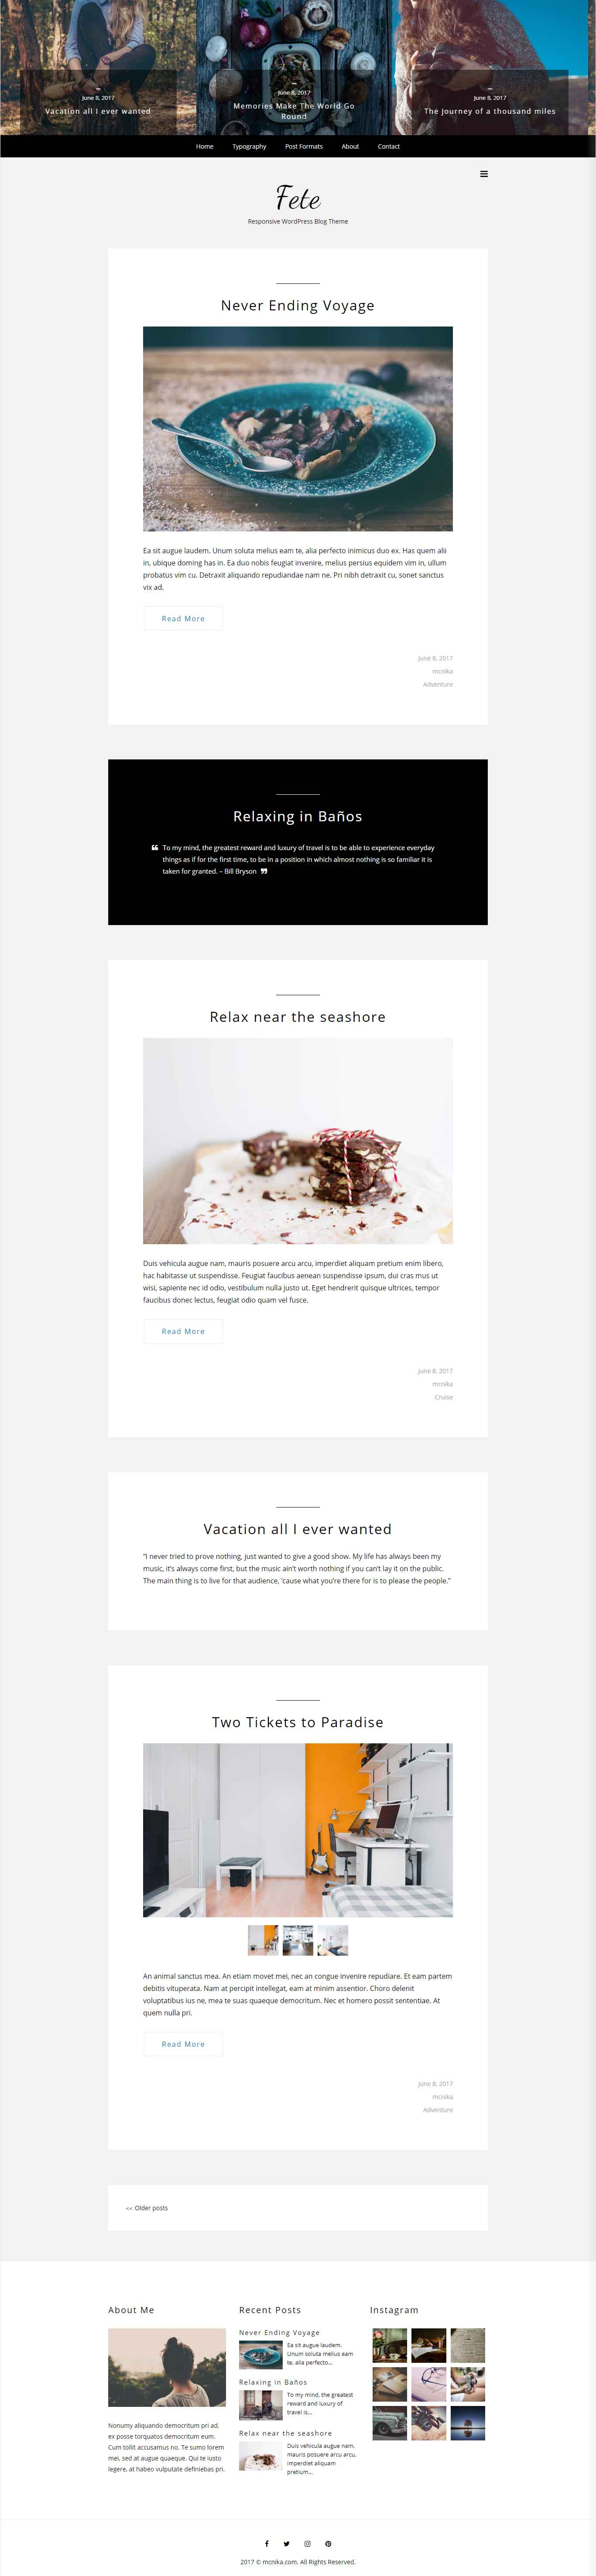 Fete – Bootstrap Responsive WordPress Blog Theme